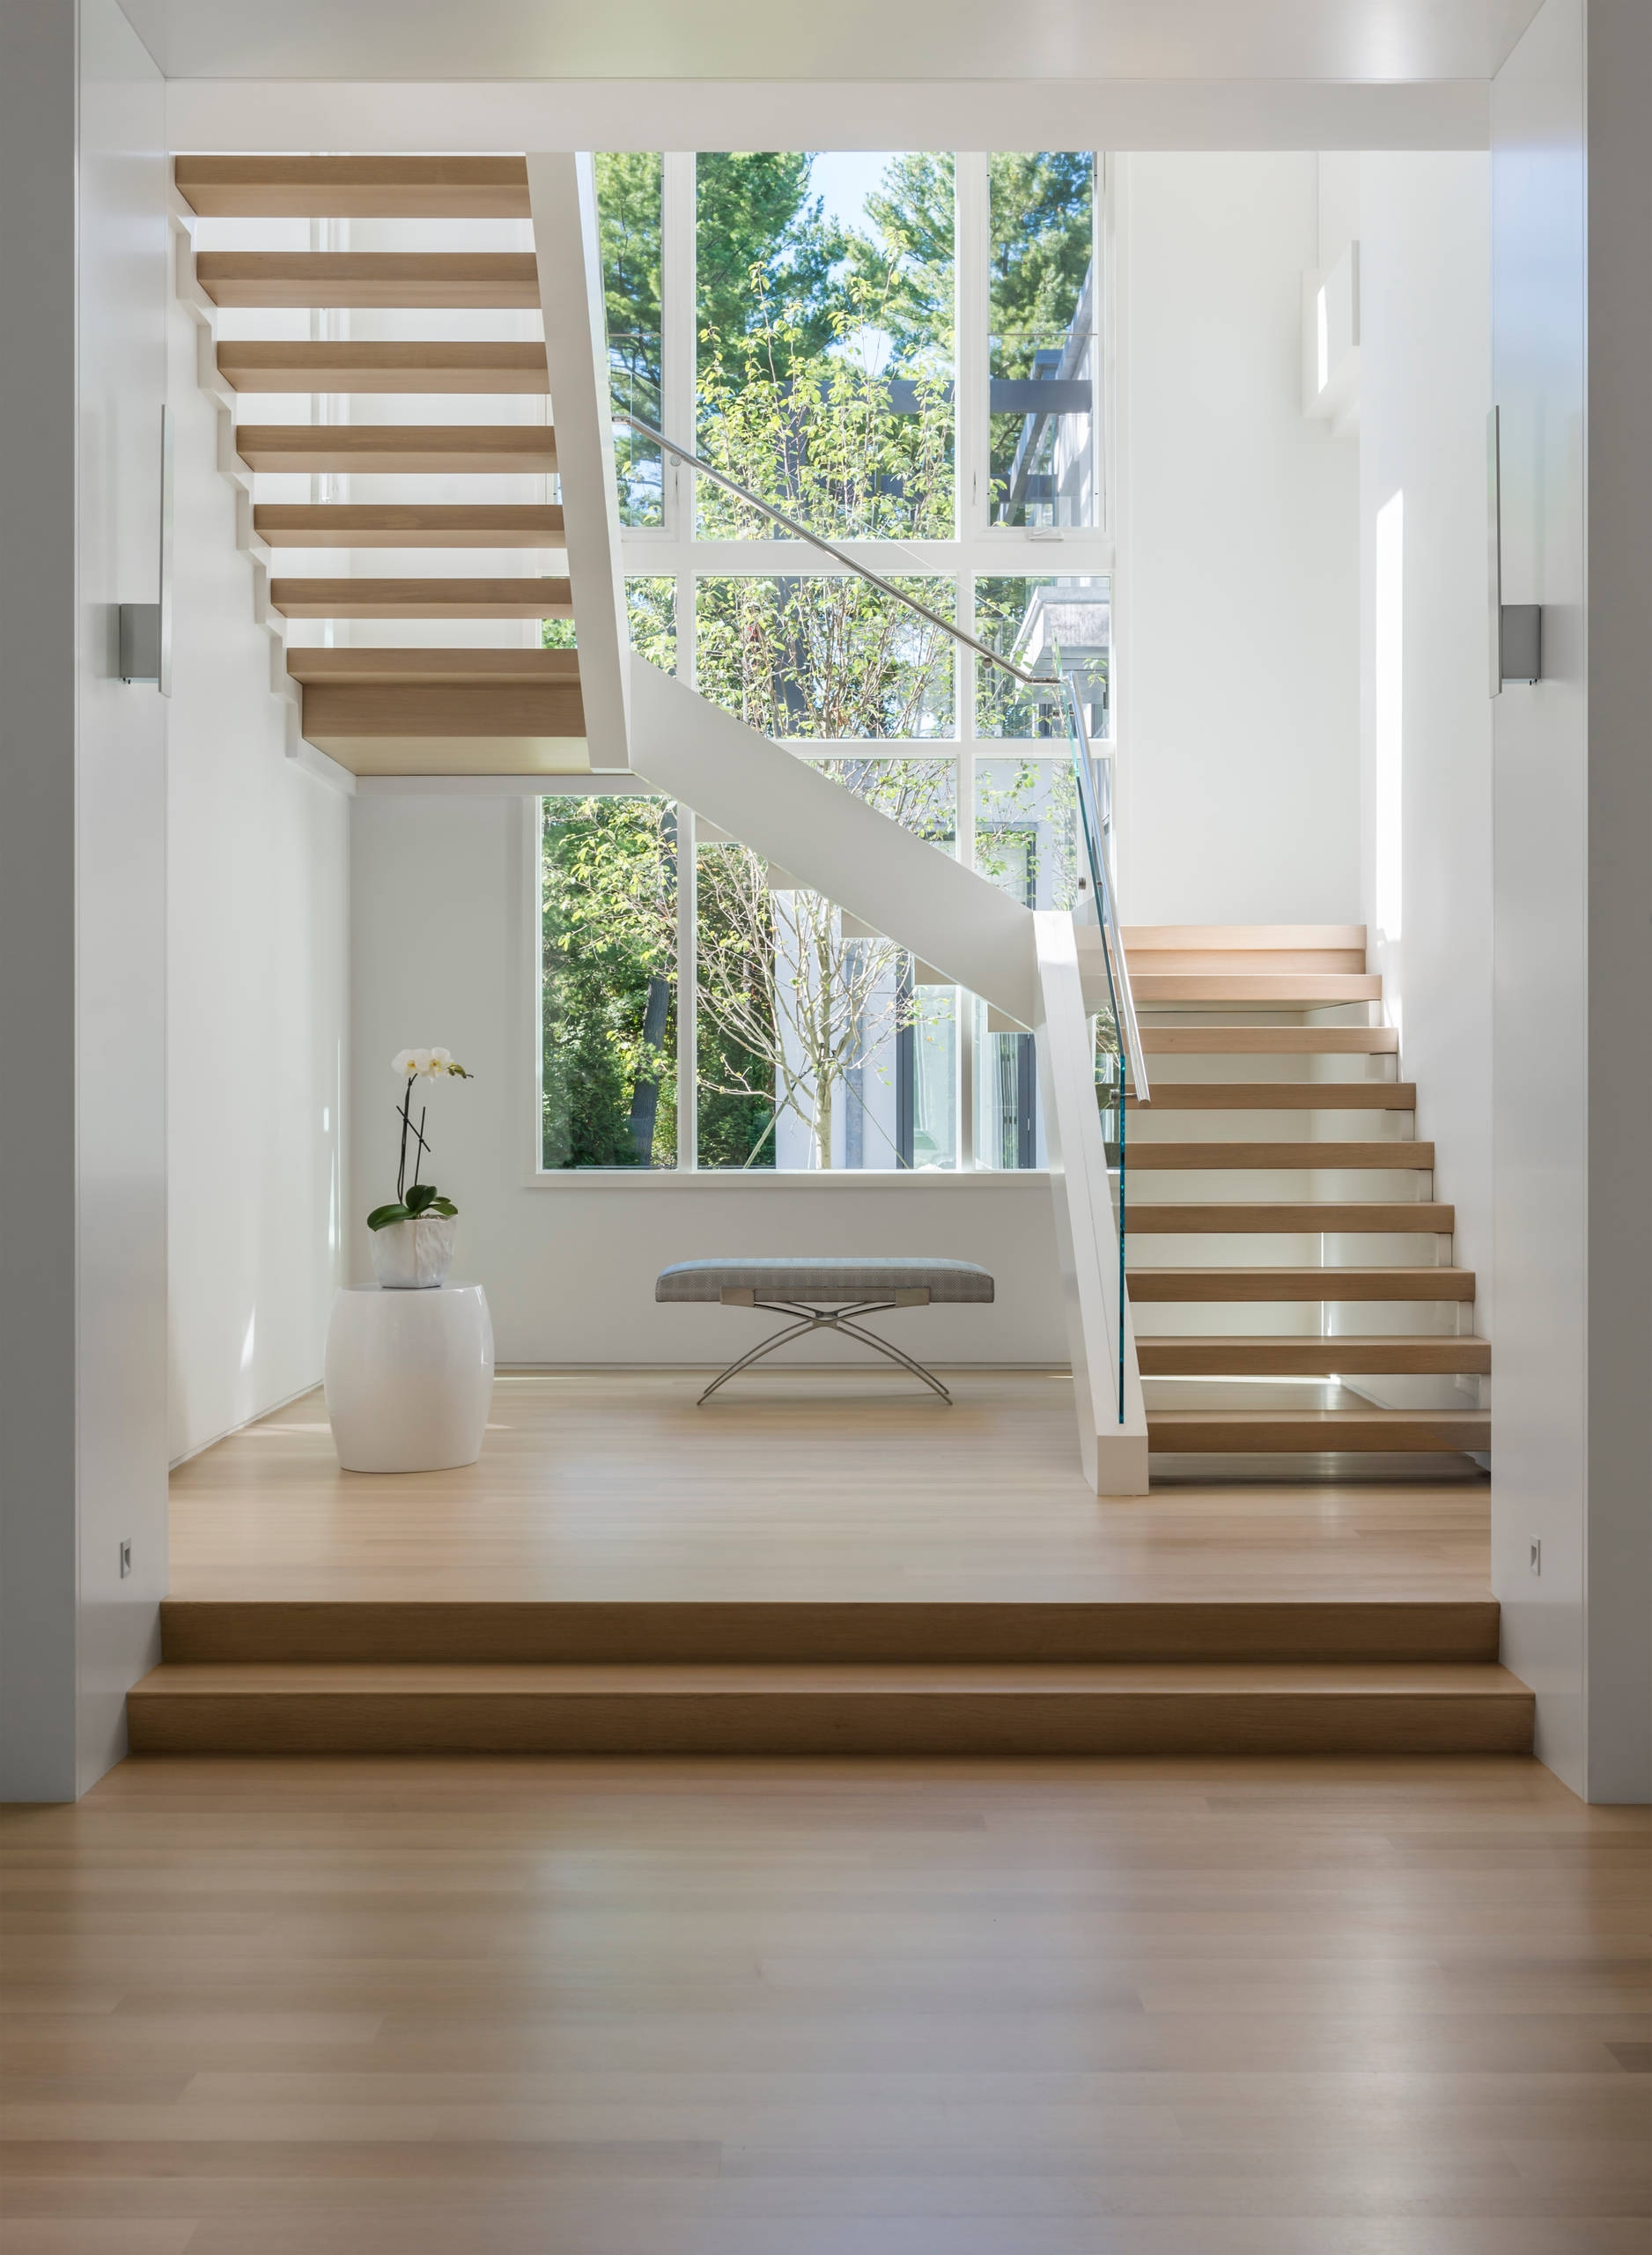 75 Beautiful U Shaped Staircase Pictures Ideas September 2020 | Double L Shaped Staircase Design | Limited Space | Space Saving Stair | Inner Staircase | Traditional | 90 Degree